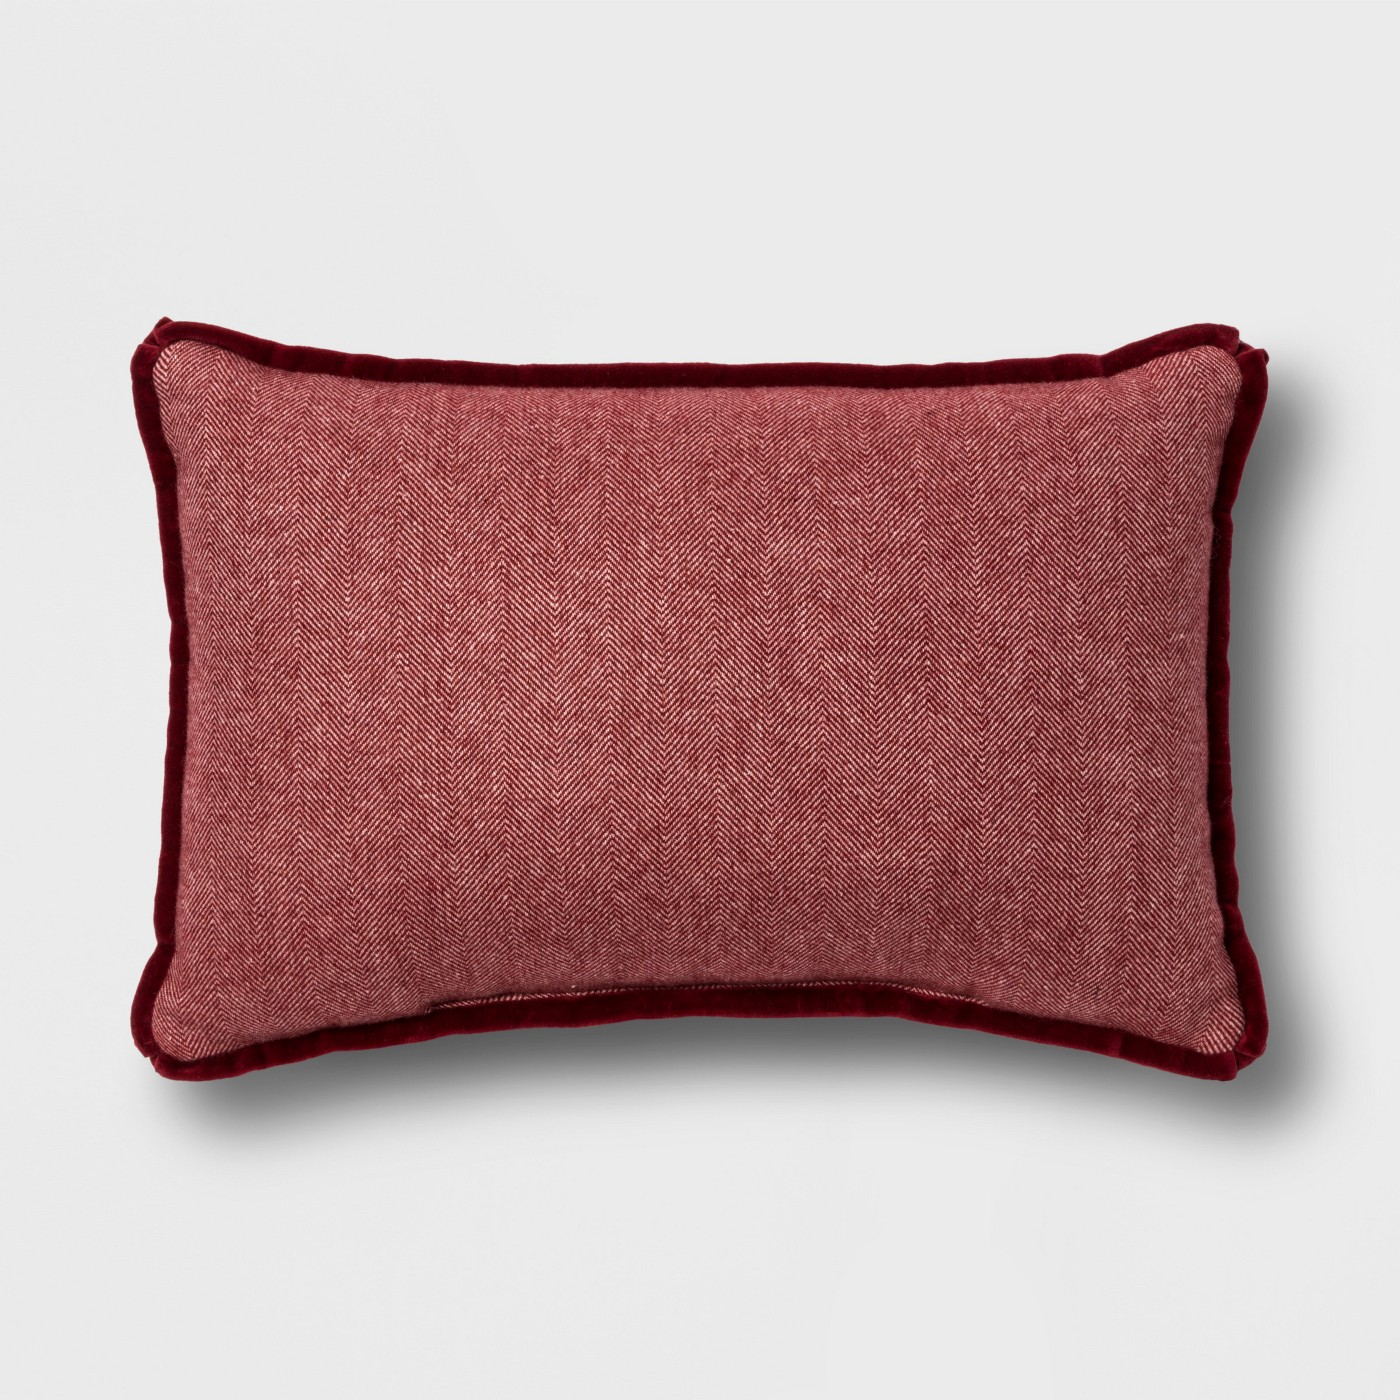 Red pillow for autumn living room farmhouse interior